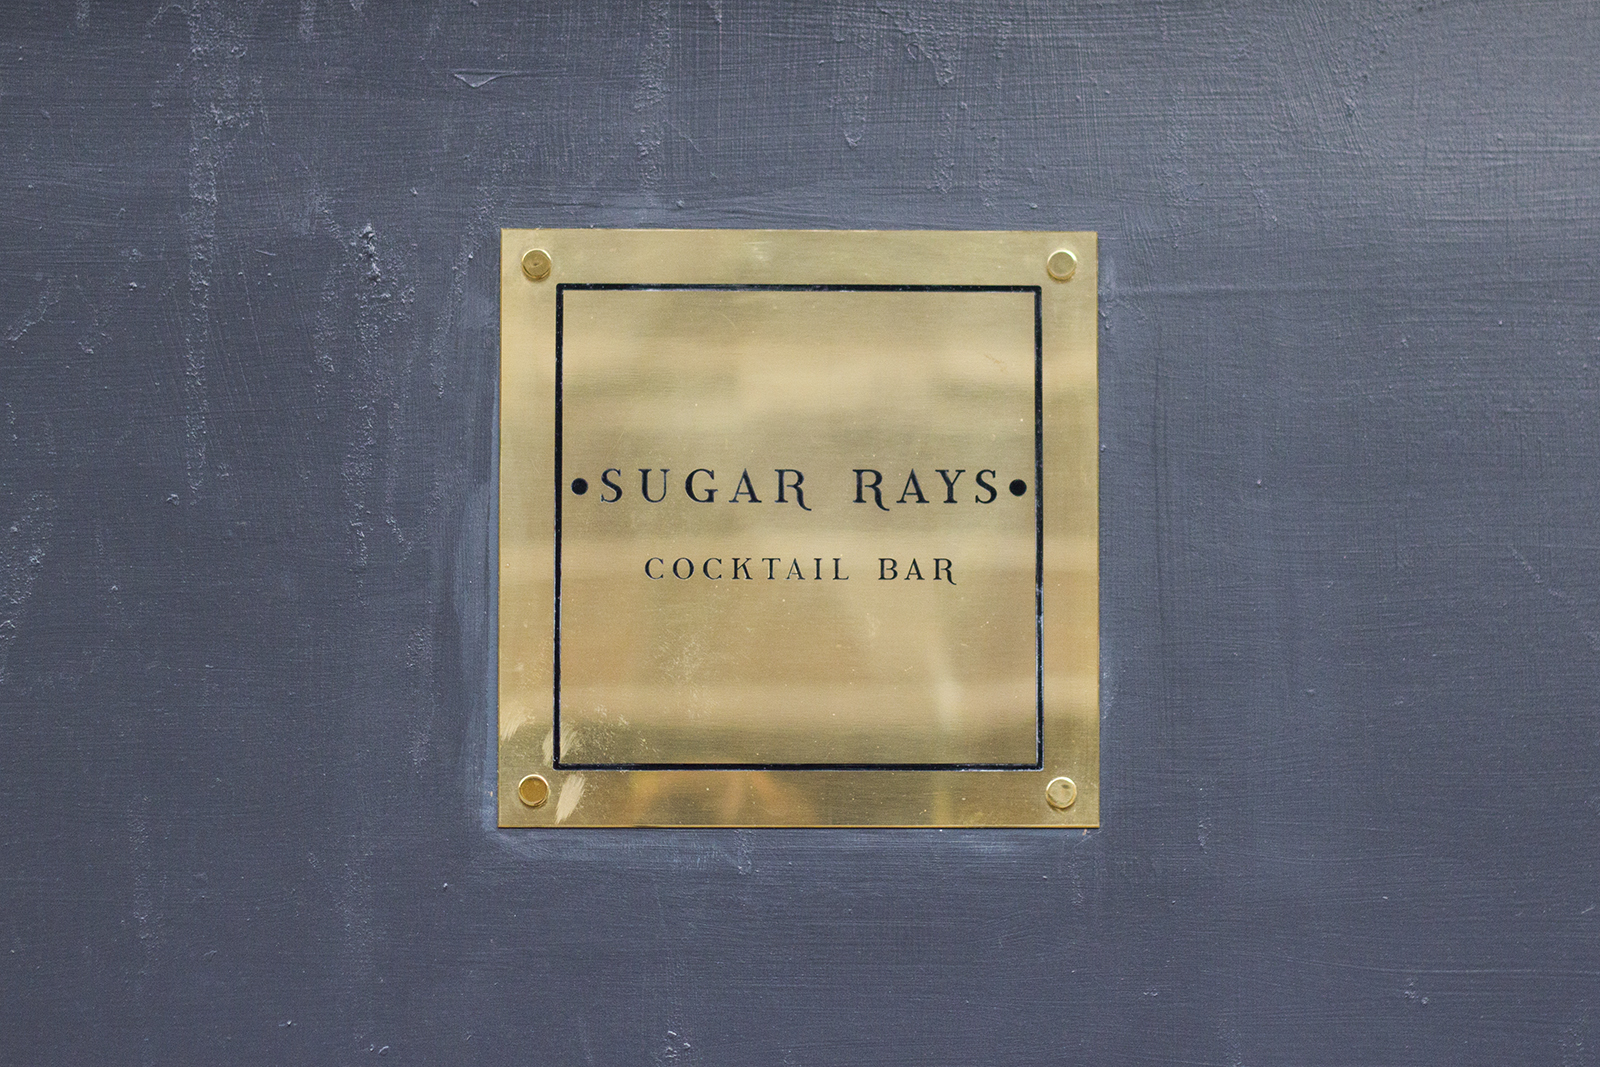 Sugar Rays Cocktail Bar Manchester - Review